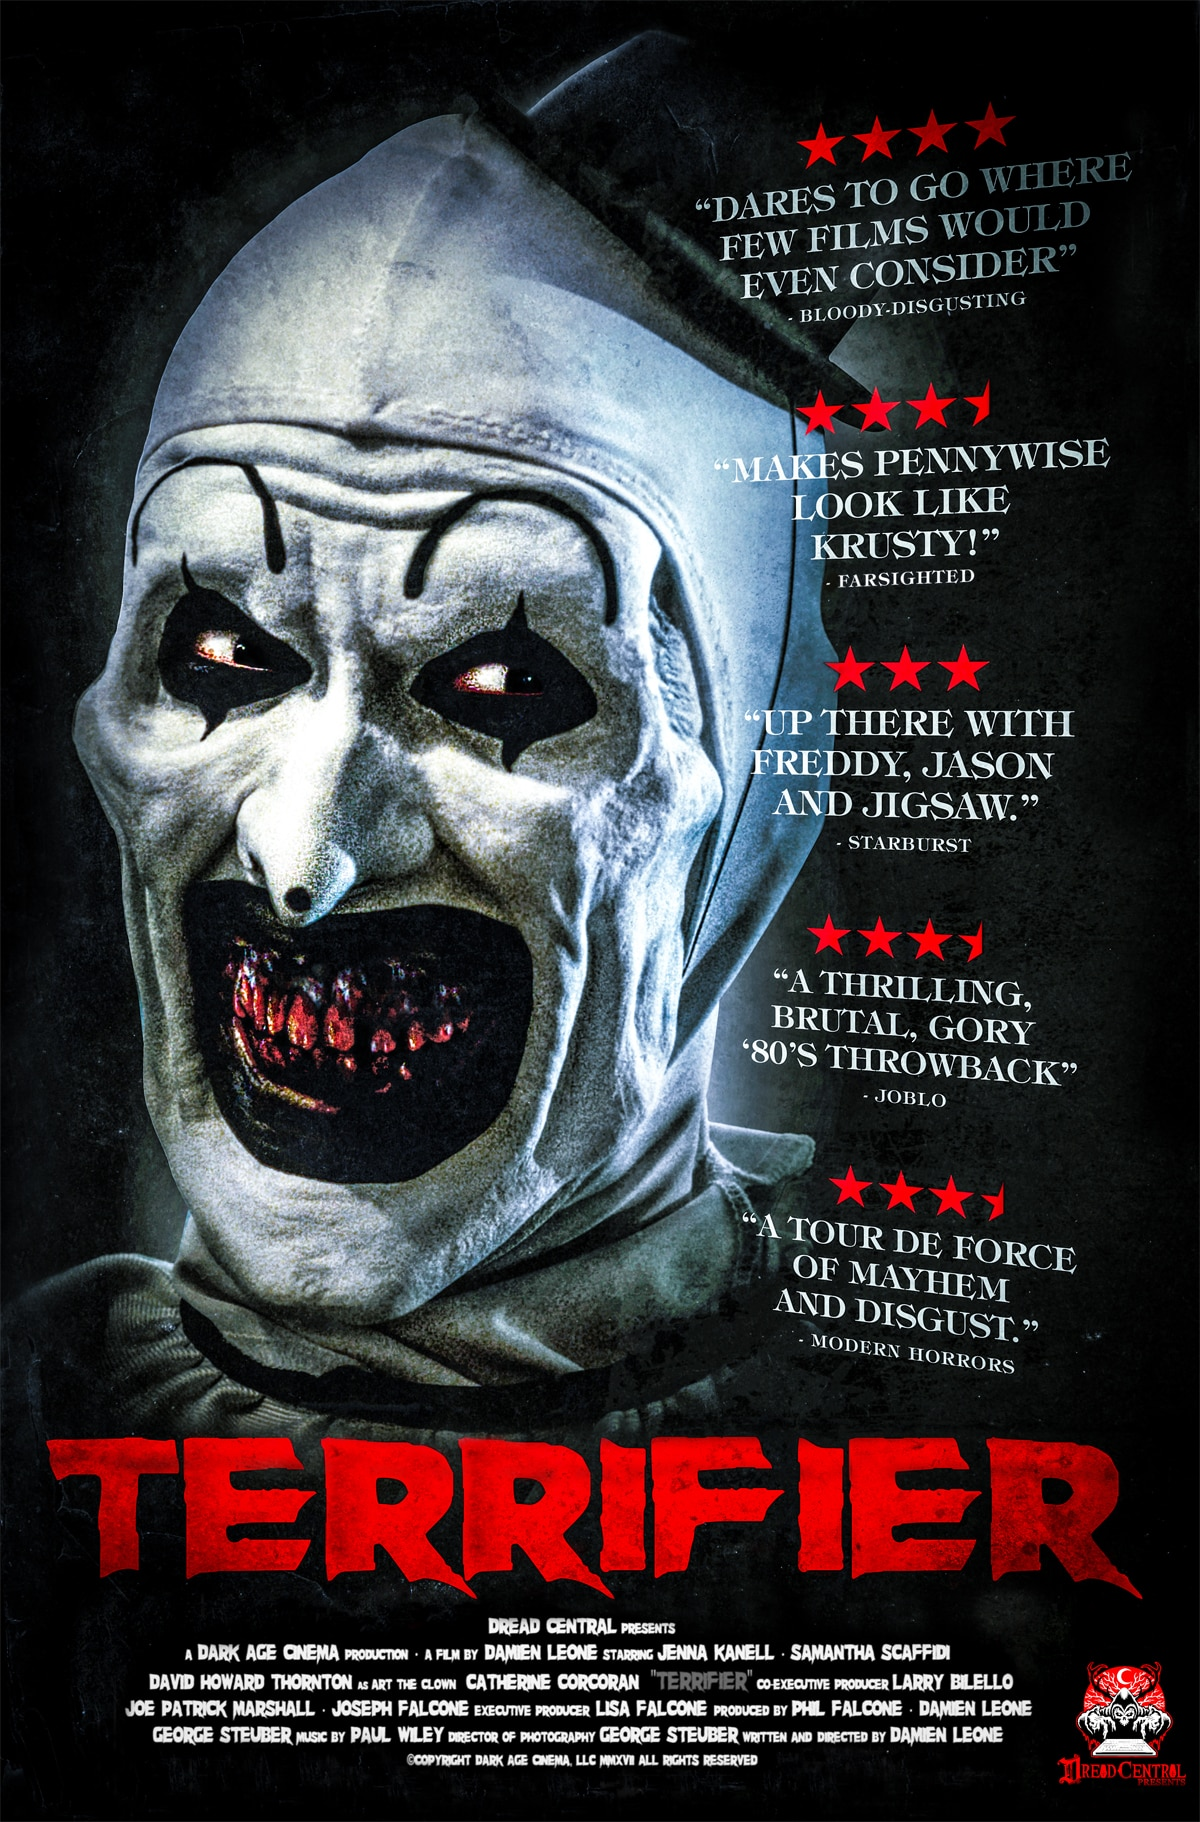 terrifier final poster - Terrifier Review Round-Up: The Critics Are SCREAMING!